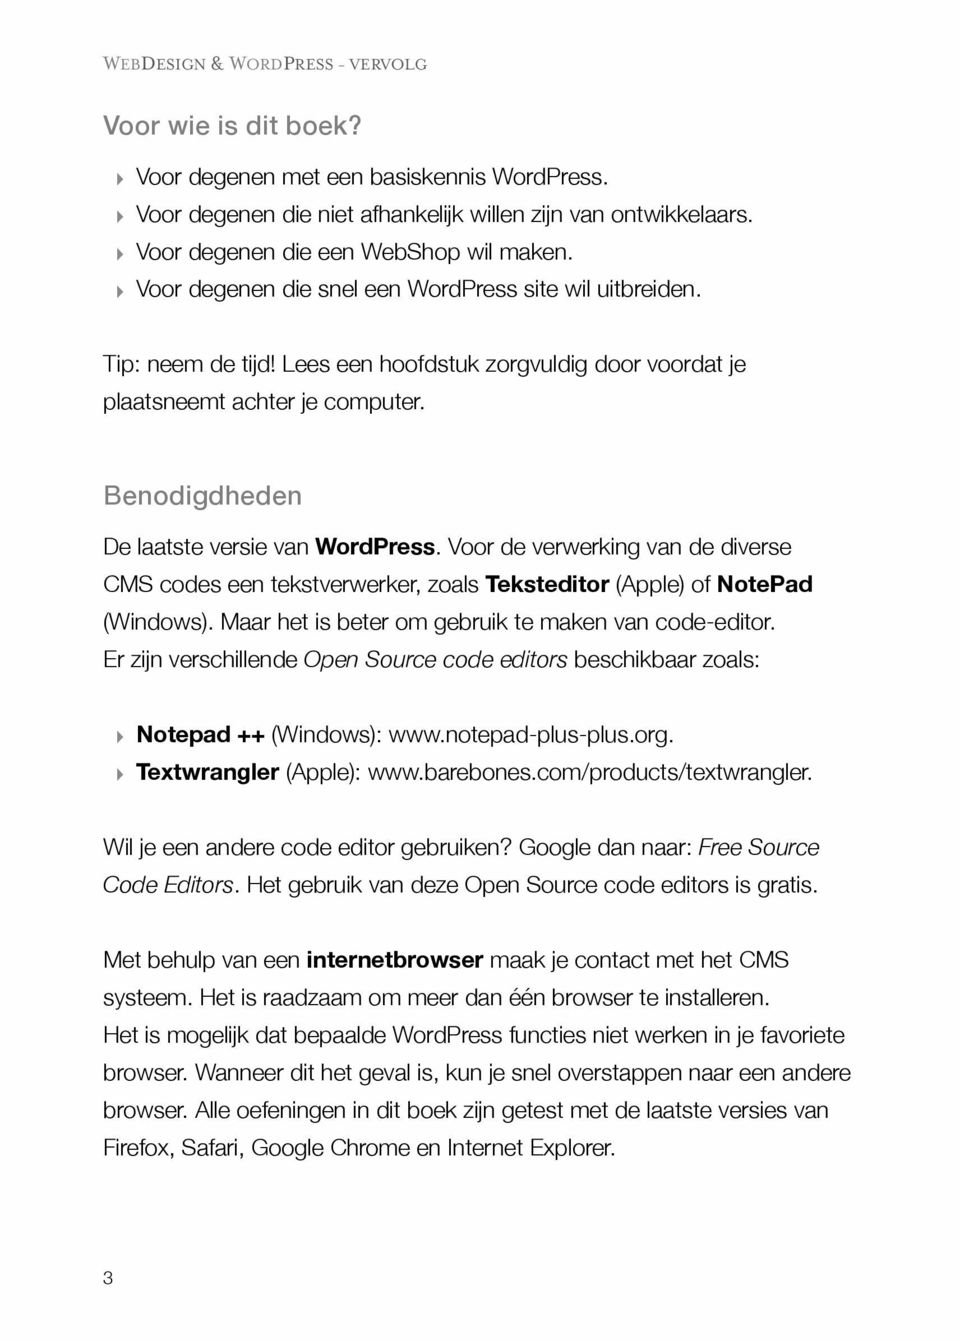 Benodigdheden De laatste versie van WordPress. Voor de verwerking van de diverse CMS codes een tekstverwerker, zoals Teksteditor (Apple) of NotePad (Windows).